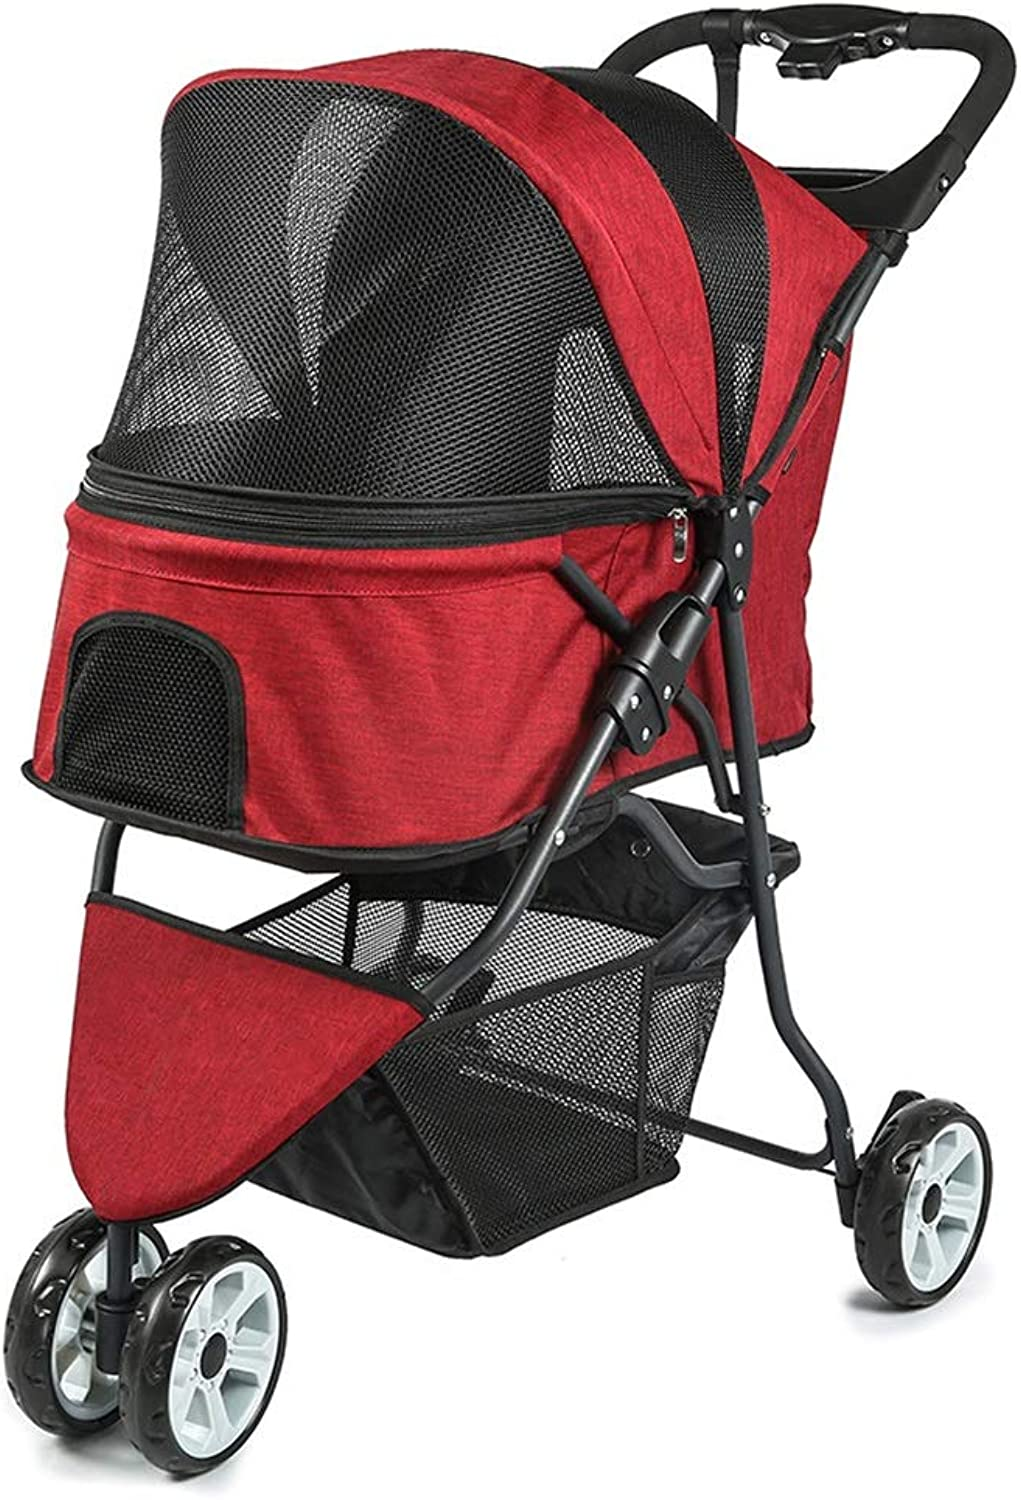 MZP Pet Travel Stroller, 600D PVC Cloth Suspension Pushchair Rear Brake Three Wheels Large 360 Degree redatable Cup Holders Storage Basket Load Within 60kg (color   Red)